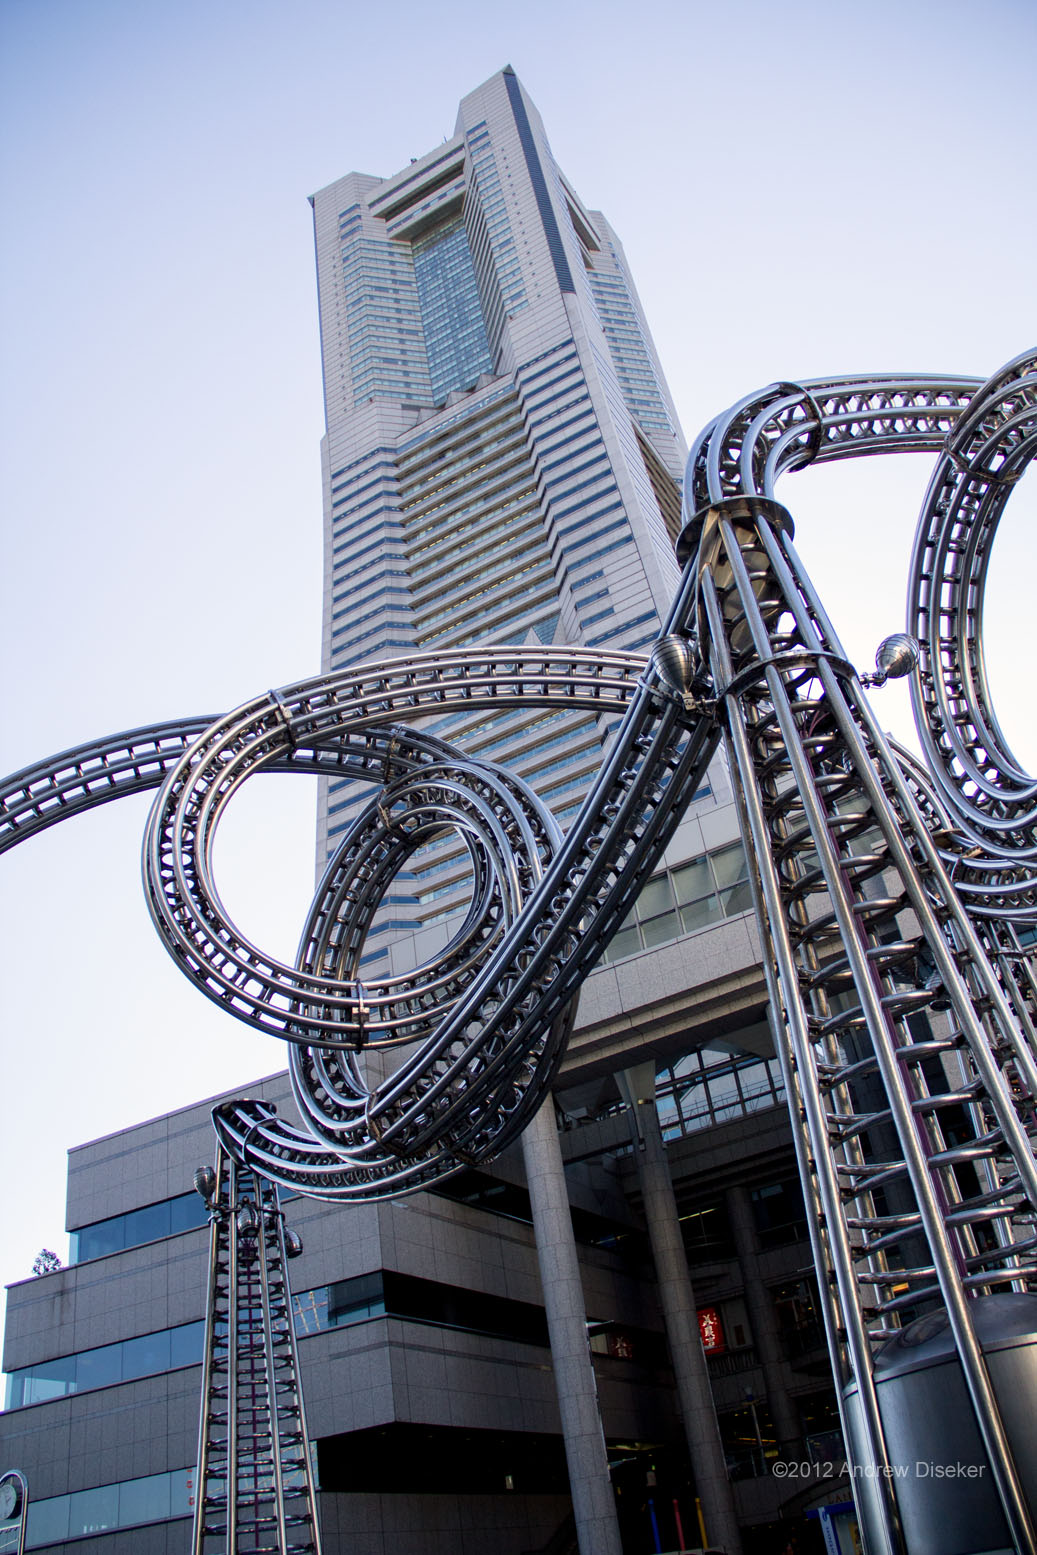 Landmark Tower viewed through a sculpture in the Landmark plaza